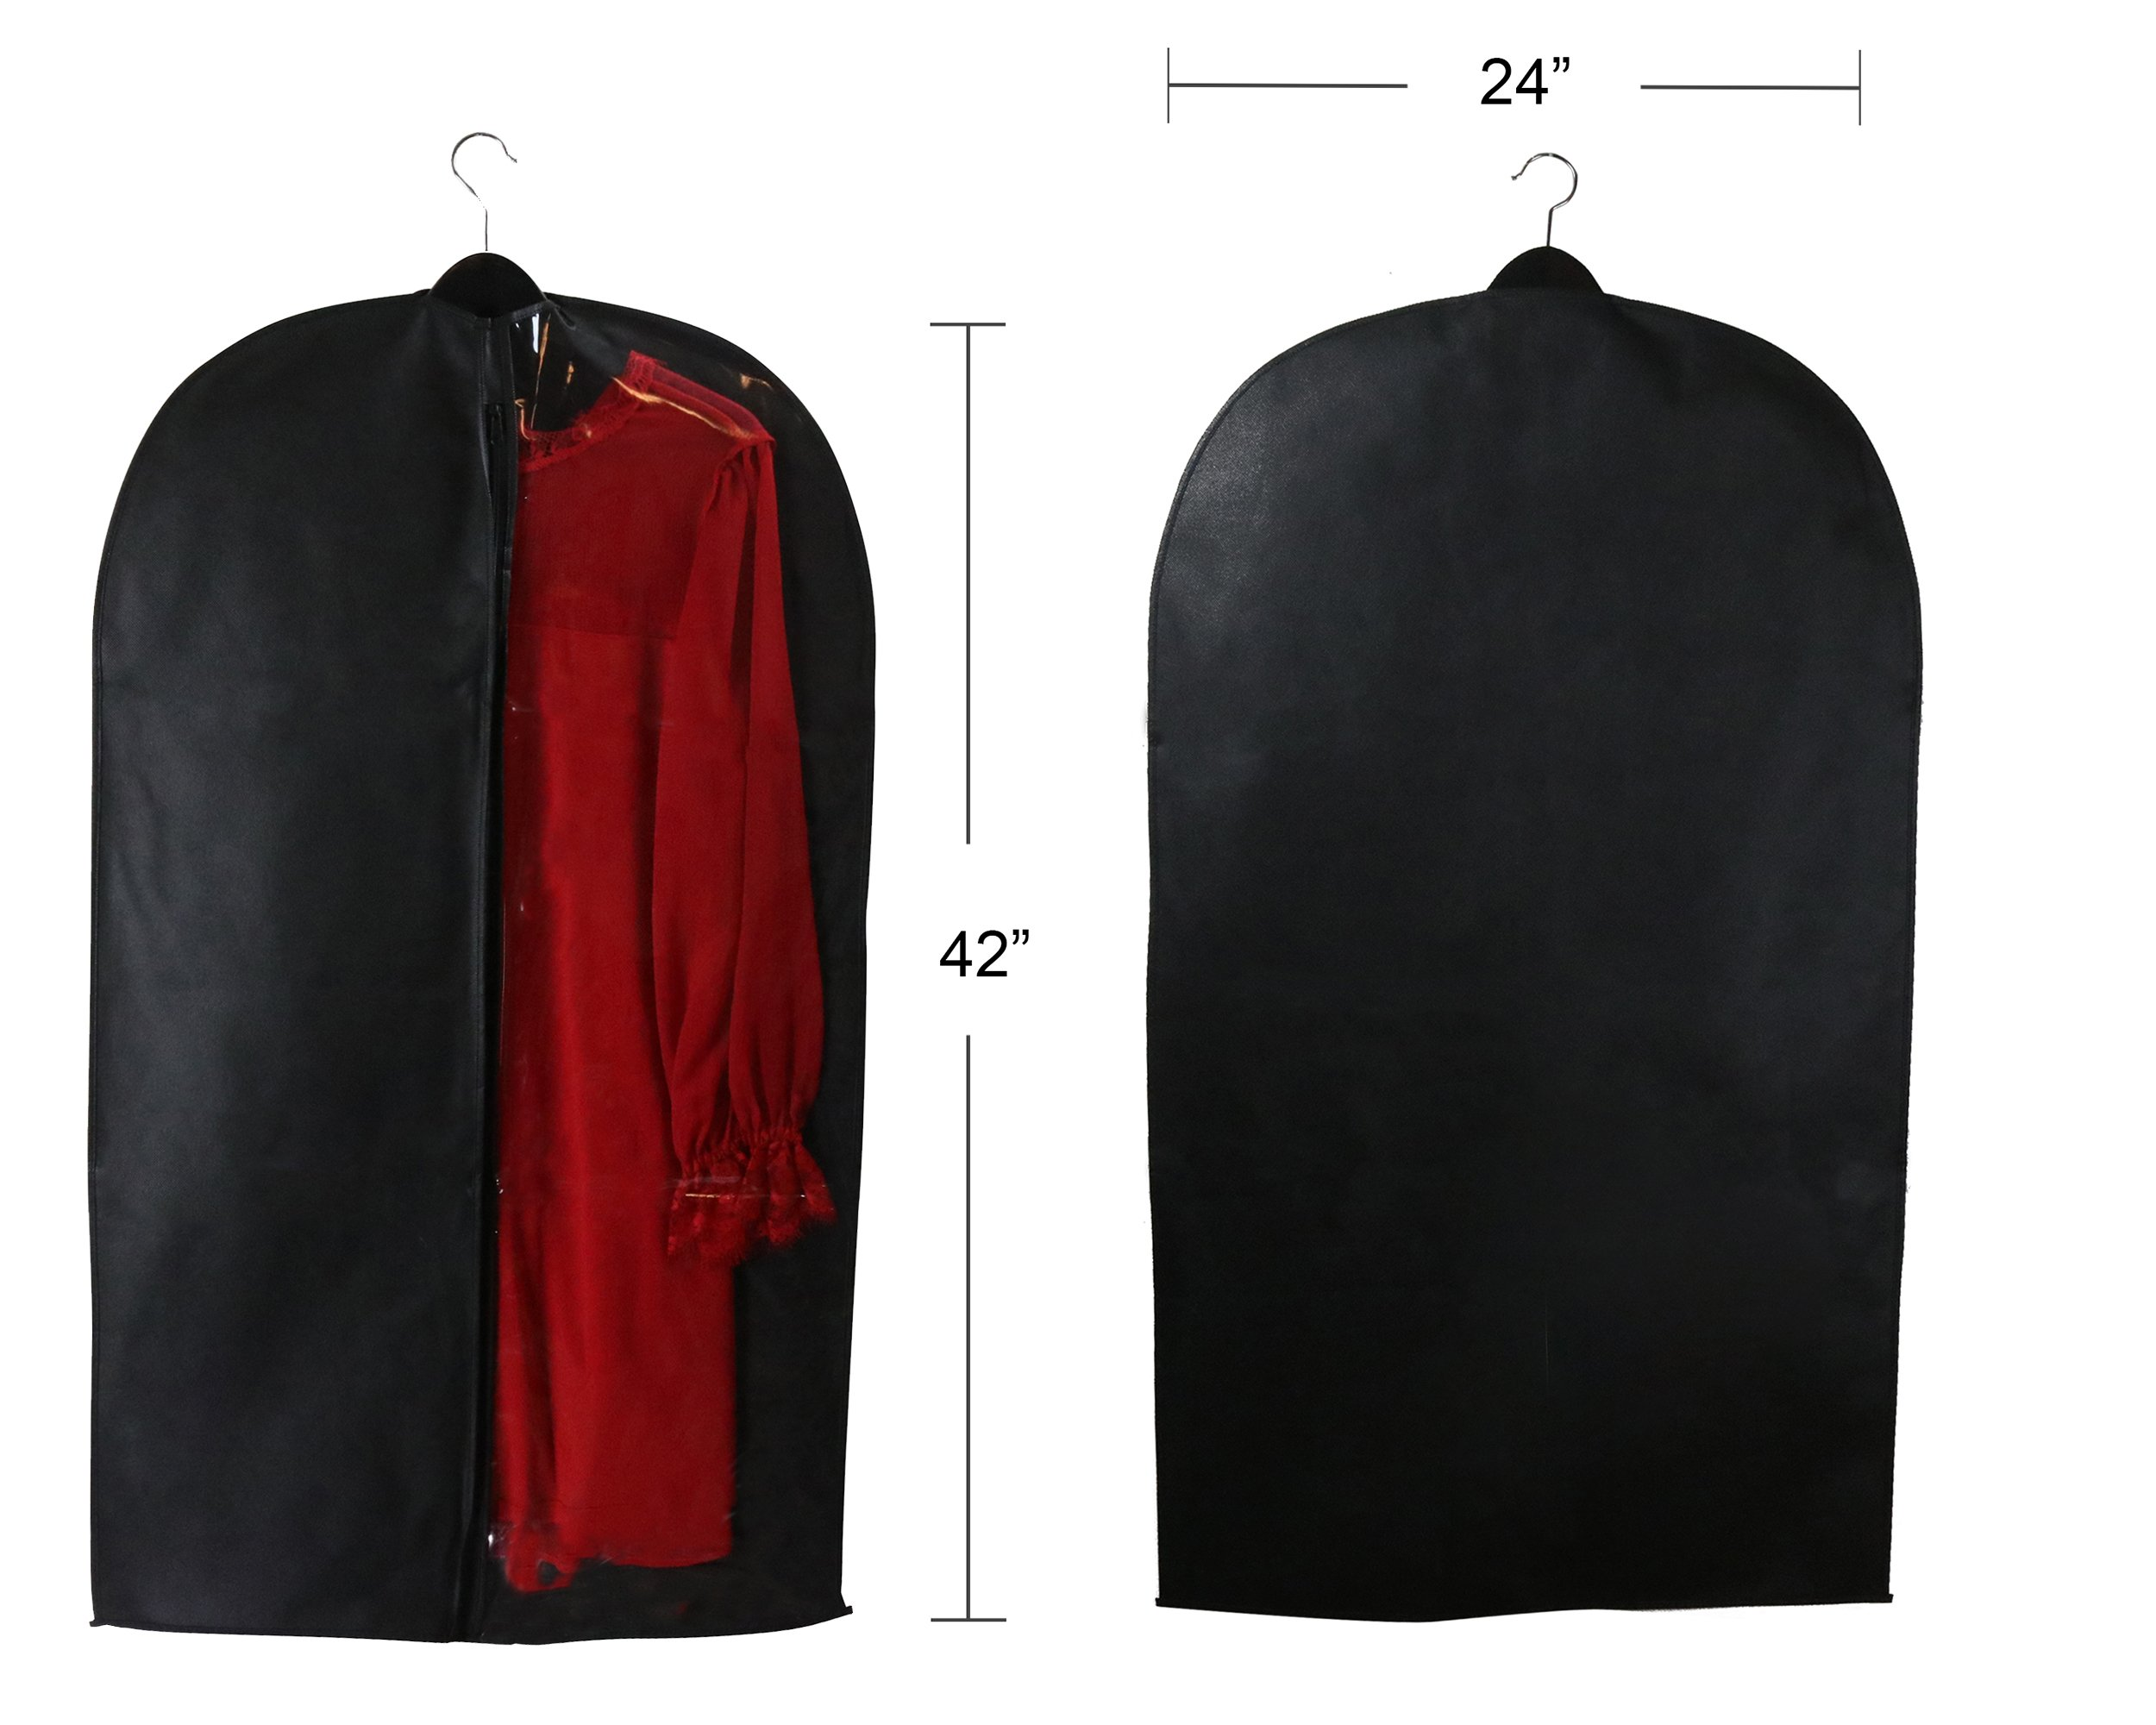 Caskyan 42'' Garment Bags, Breathable Black Non-Woven Fabric + Clear PVC for Dresses, Coats, Suits, Storage or Travel- 2 Pcs by CASKYAN (Image #4)